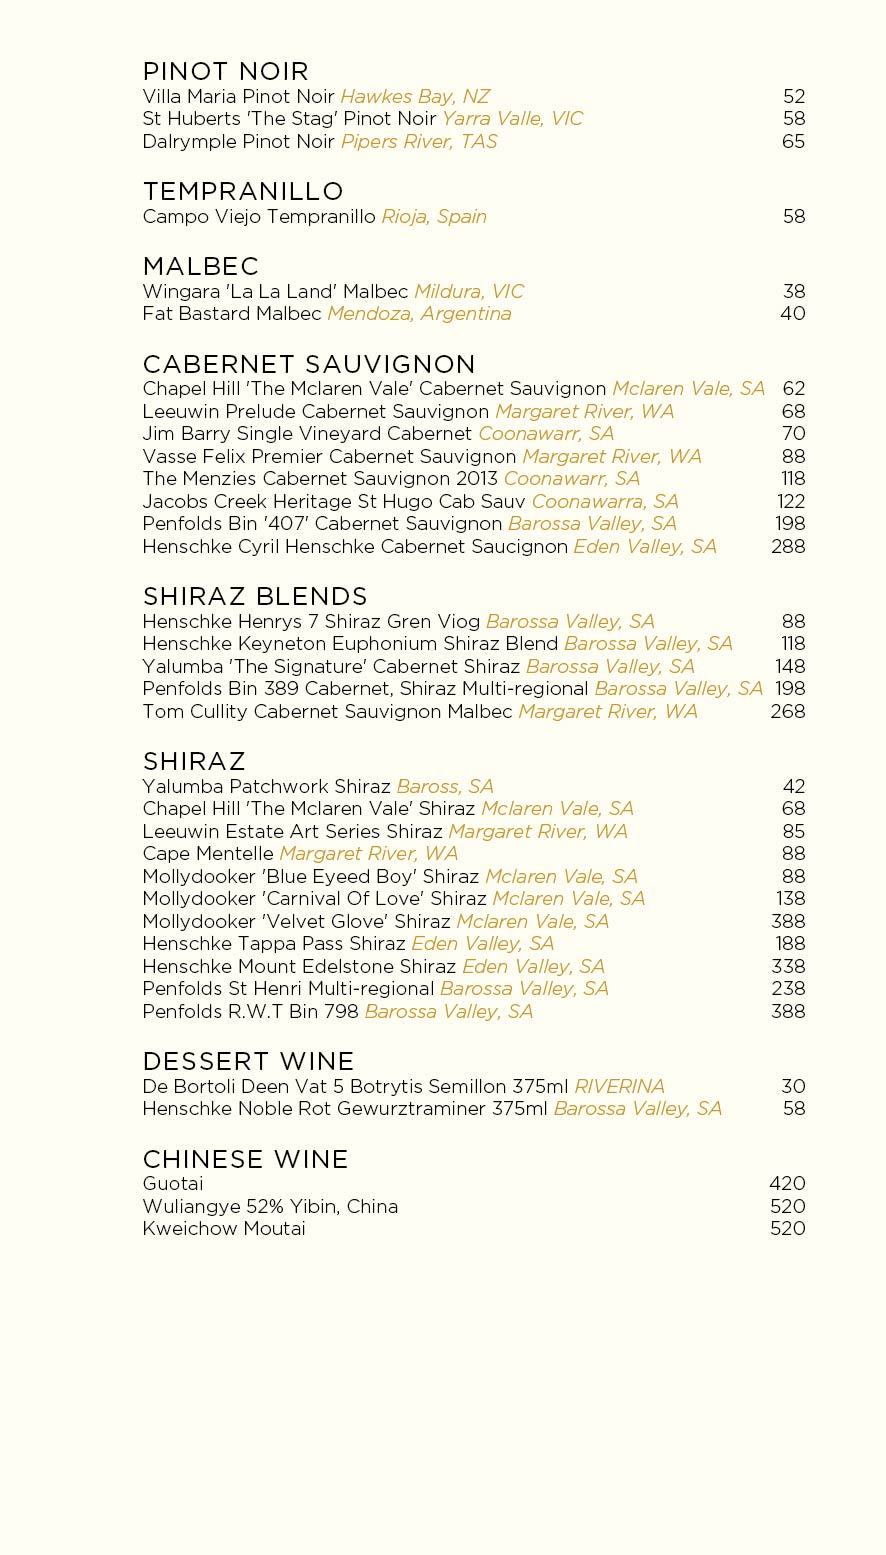 150x263mm_WineList_8point_01-04.jpg